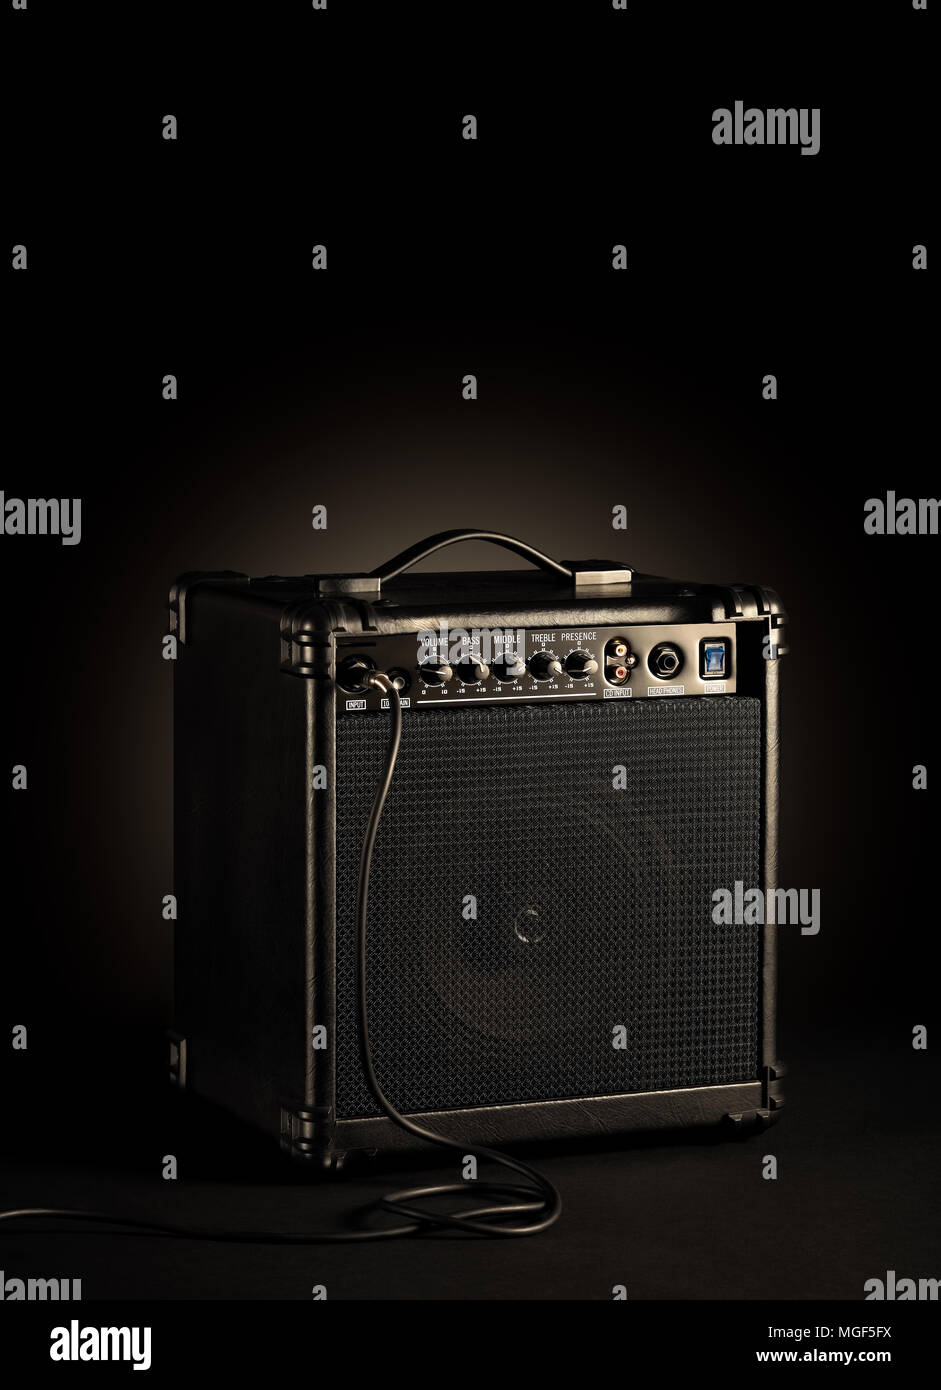 Black bass guitar amplifier whit a cord plugged in on black background Stock Photo